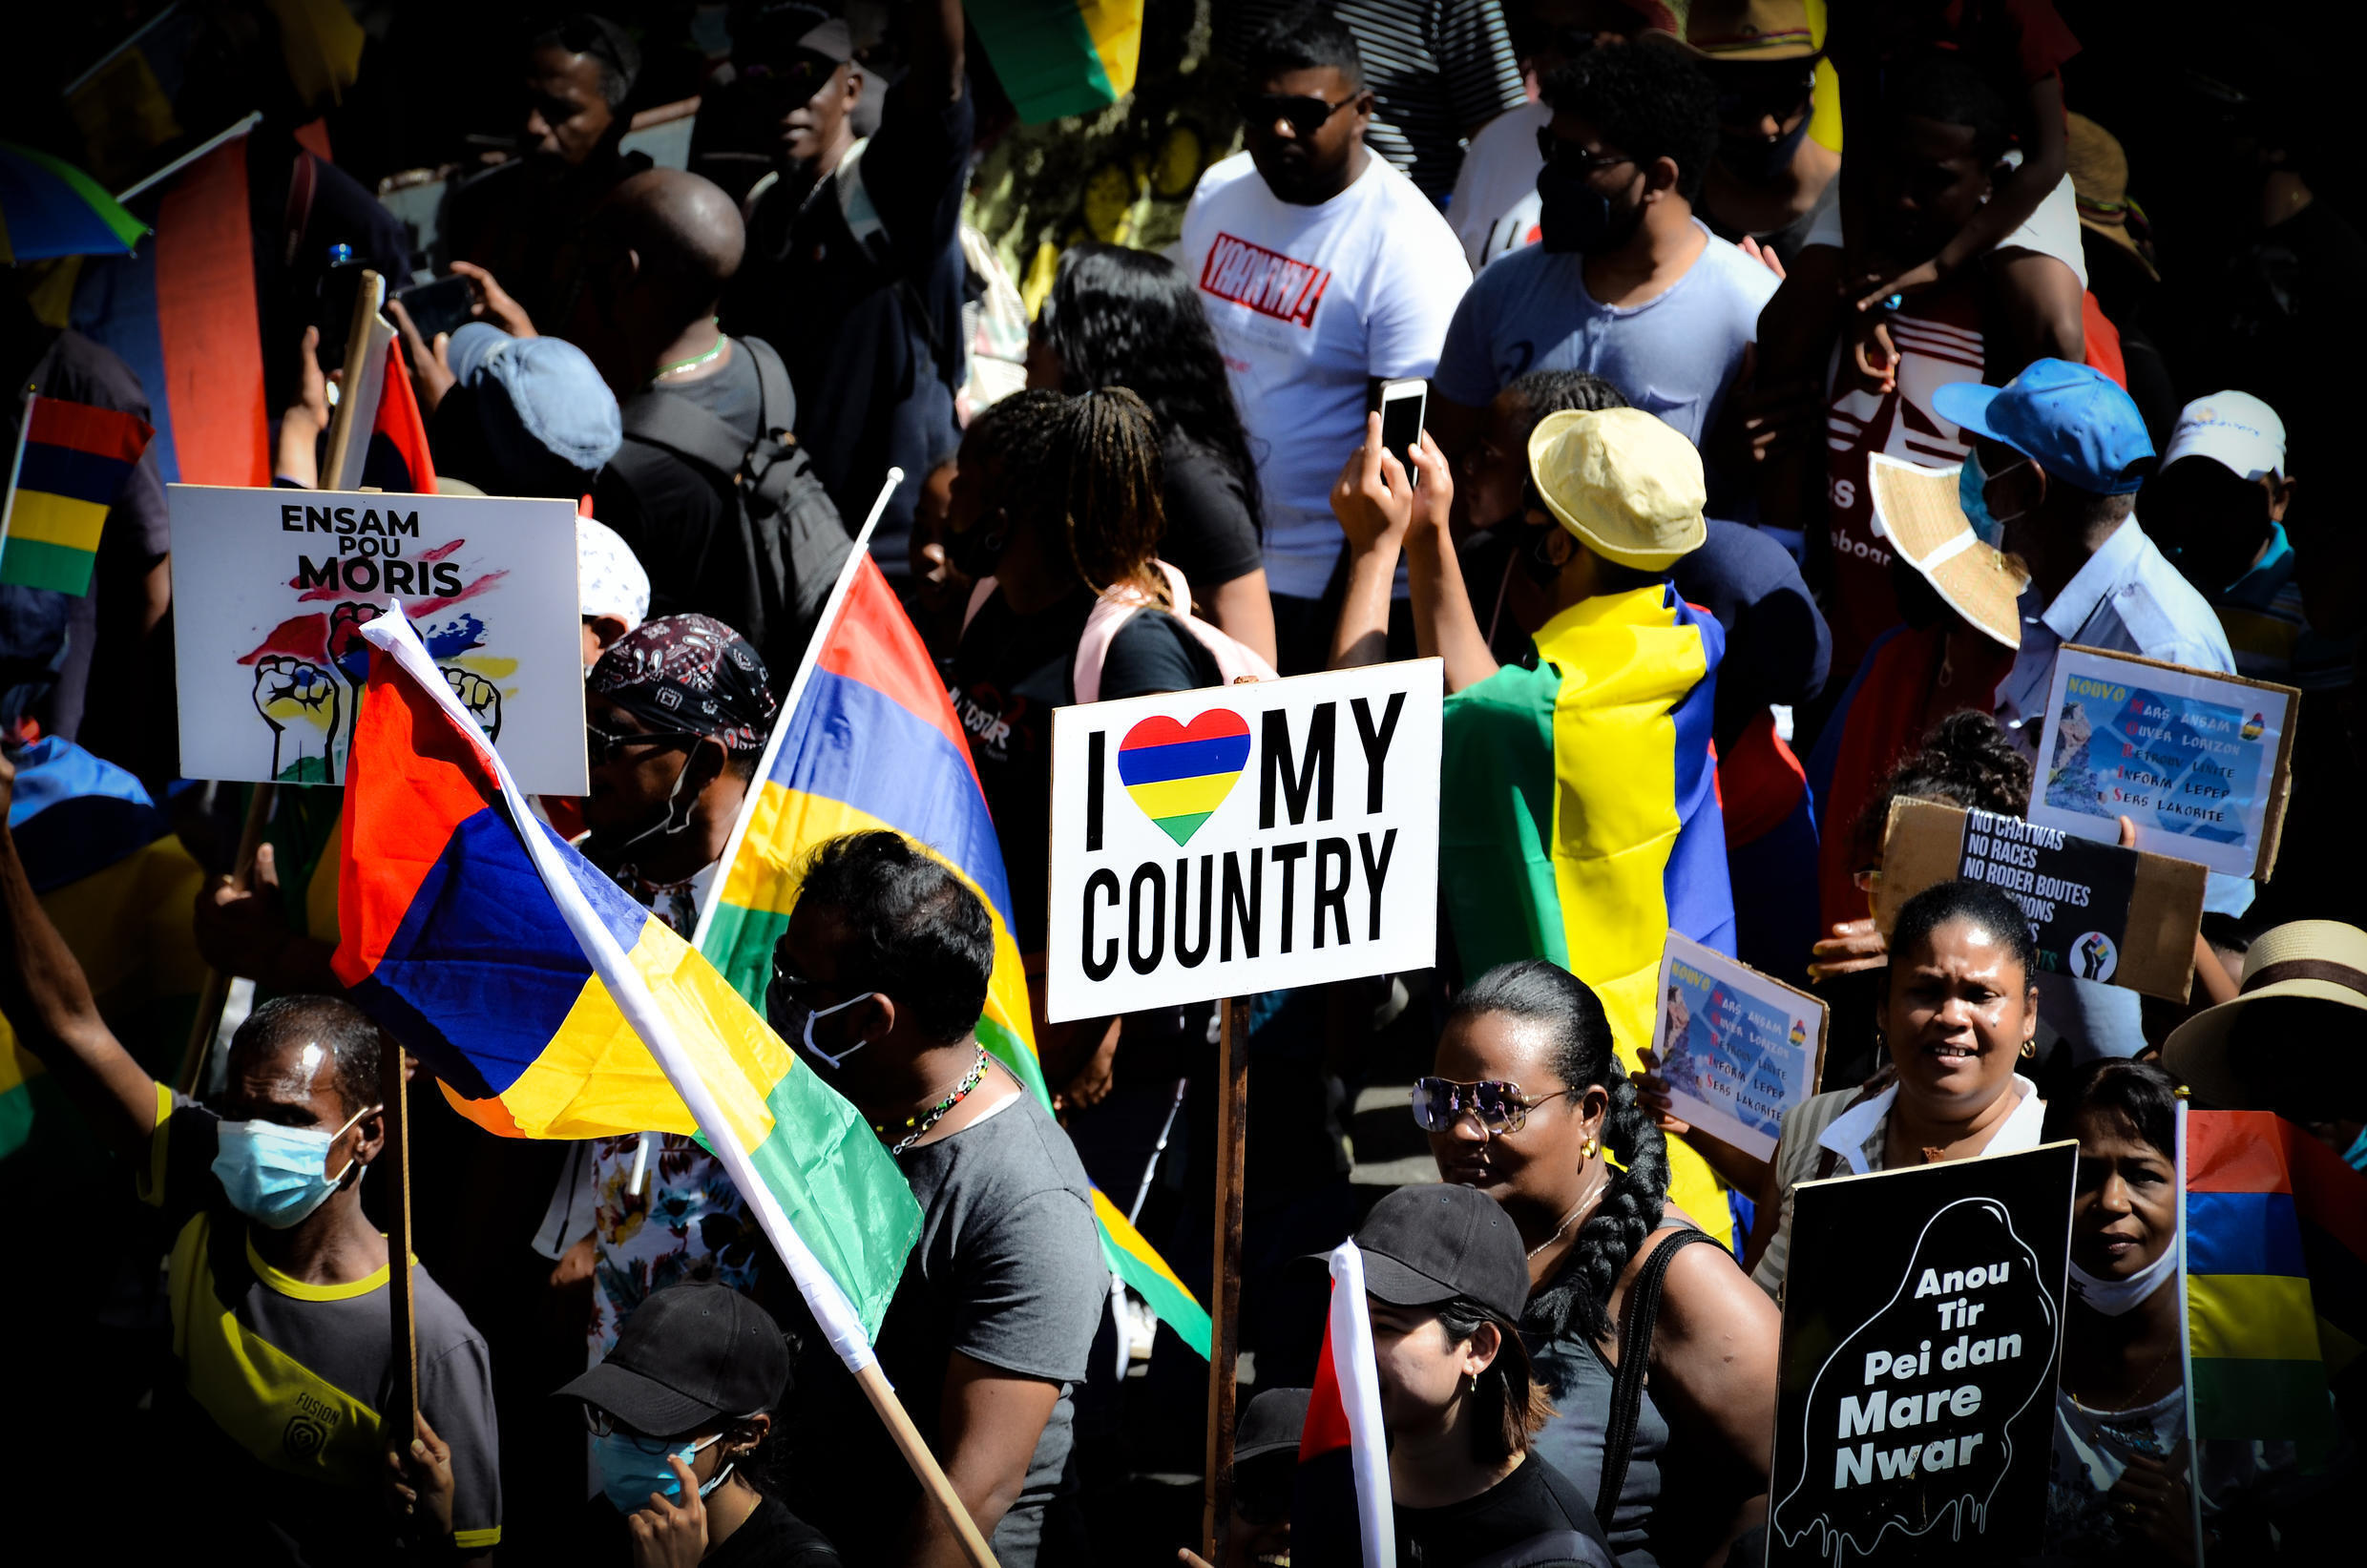 Mauritians took to the streets a second time after the Wakashion oil spill demanding more solidarity and a complete overhaul of the system governing them.